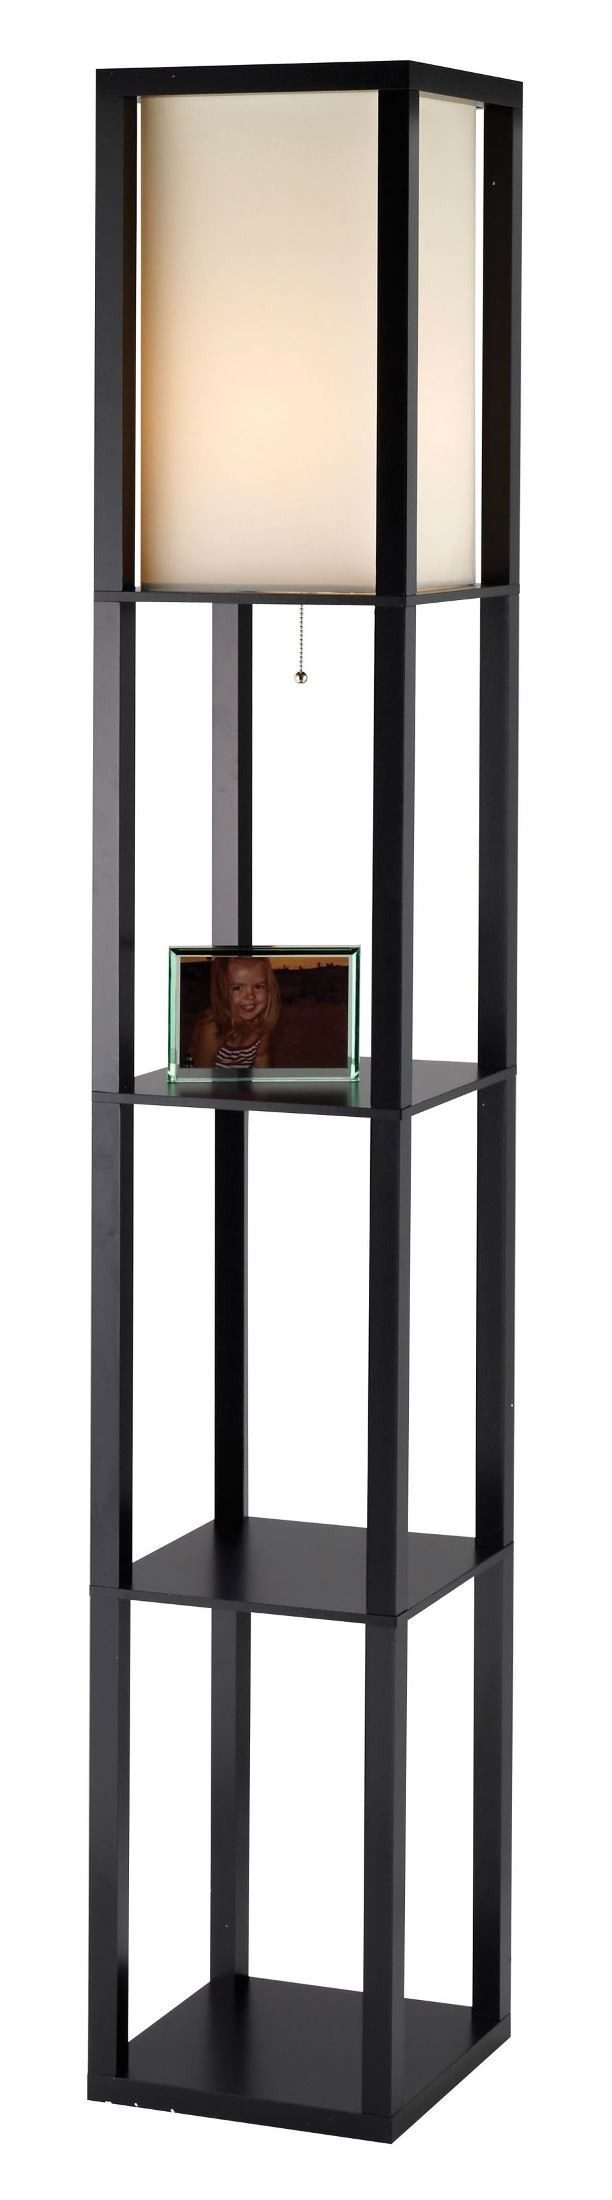 Titan black tall shelf floor lamp from adesso 3193 01 for Floor lamp with shelves